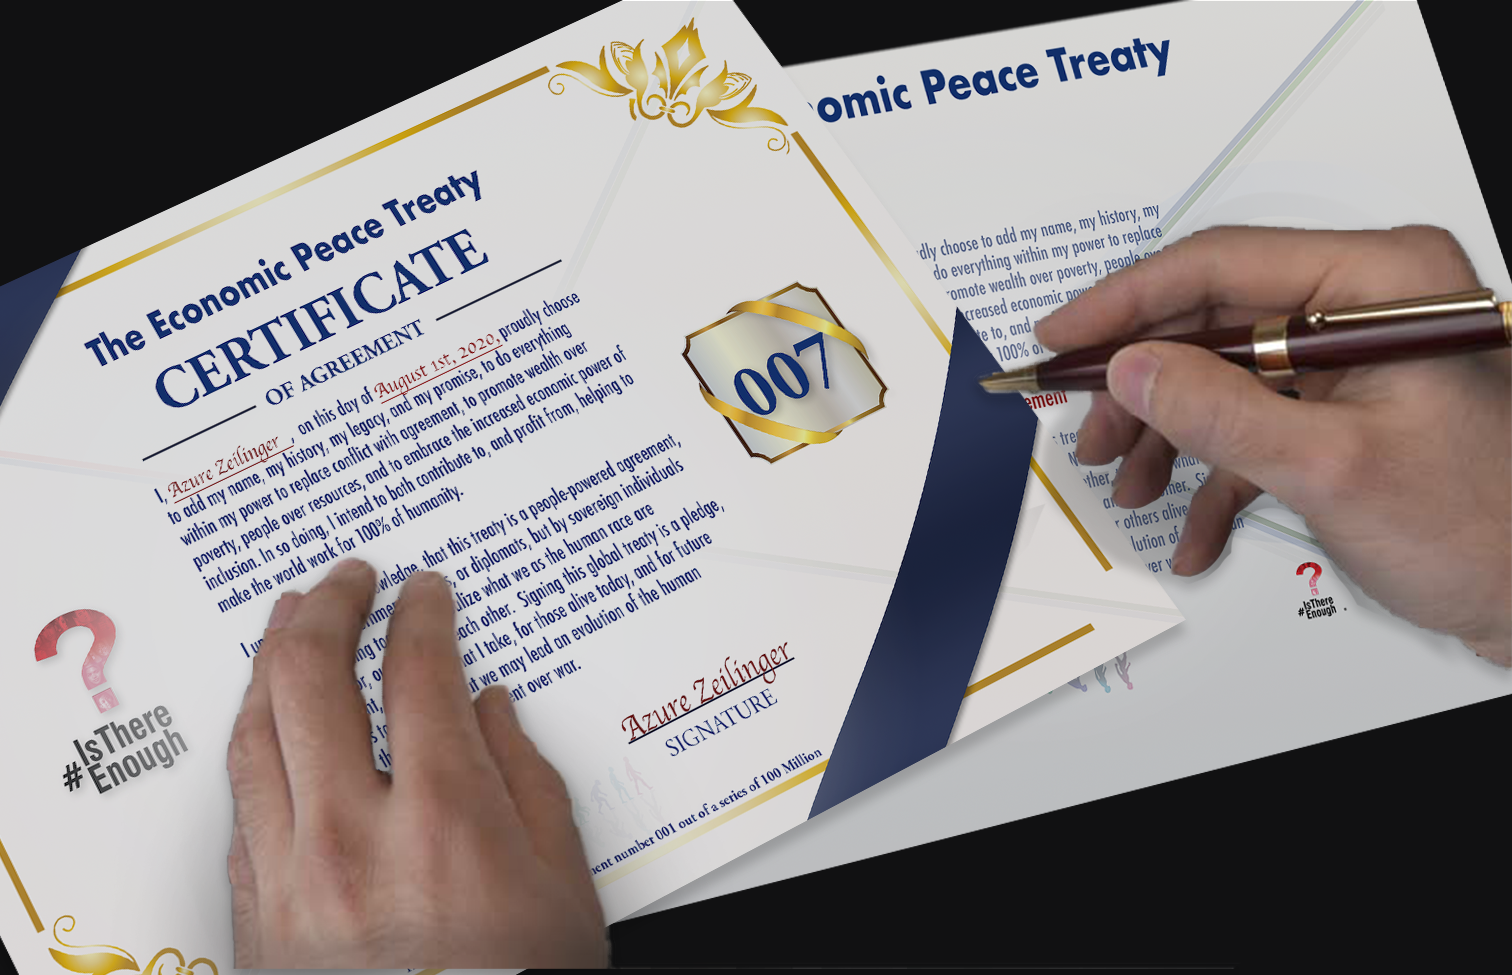 Reserve your spot to sign the treaty